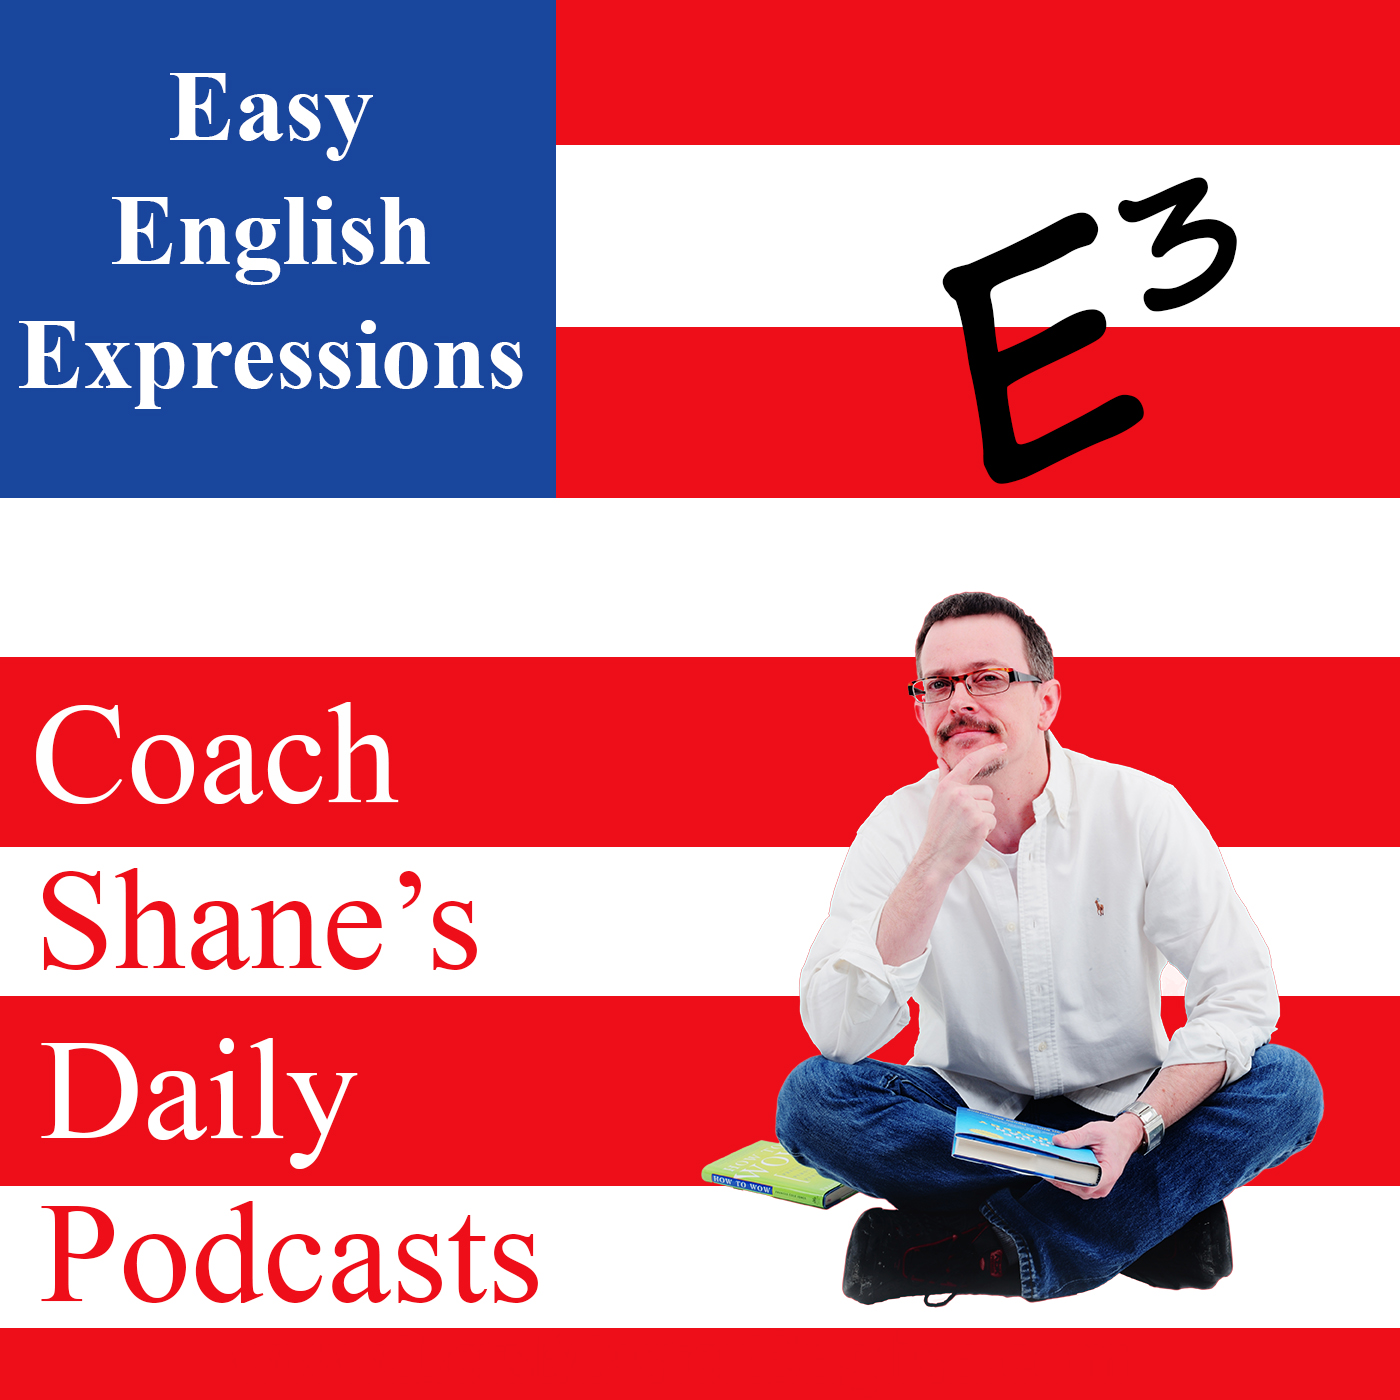 75 Daily Easy English Expression PODCAST—take it with a grain of salt